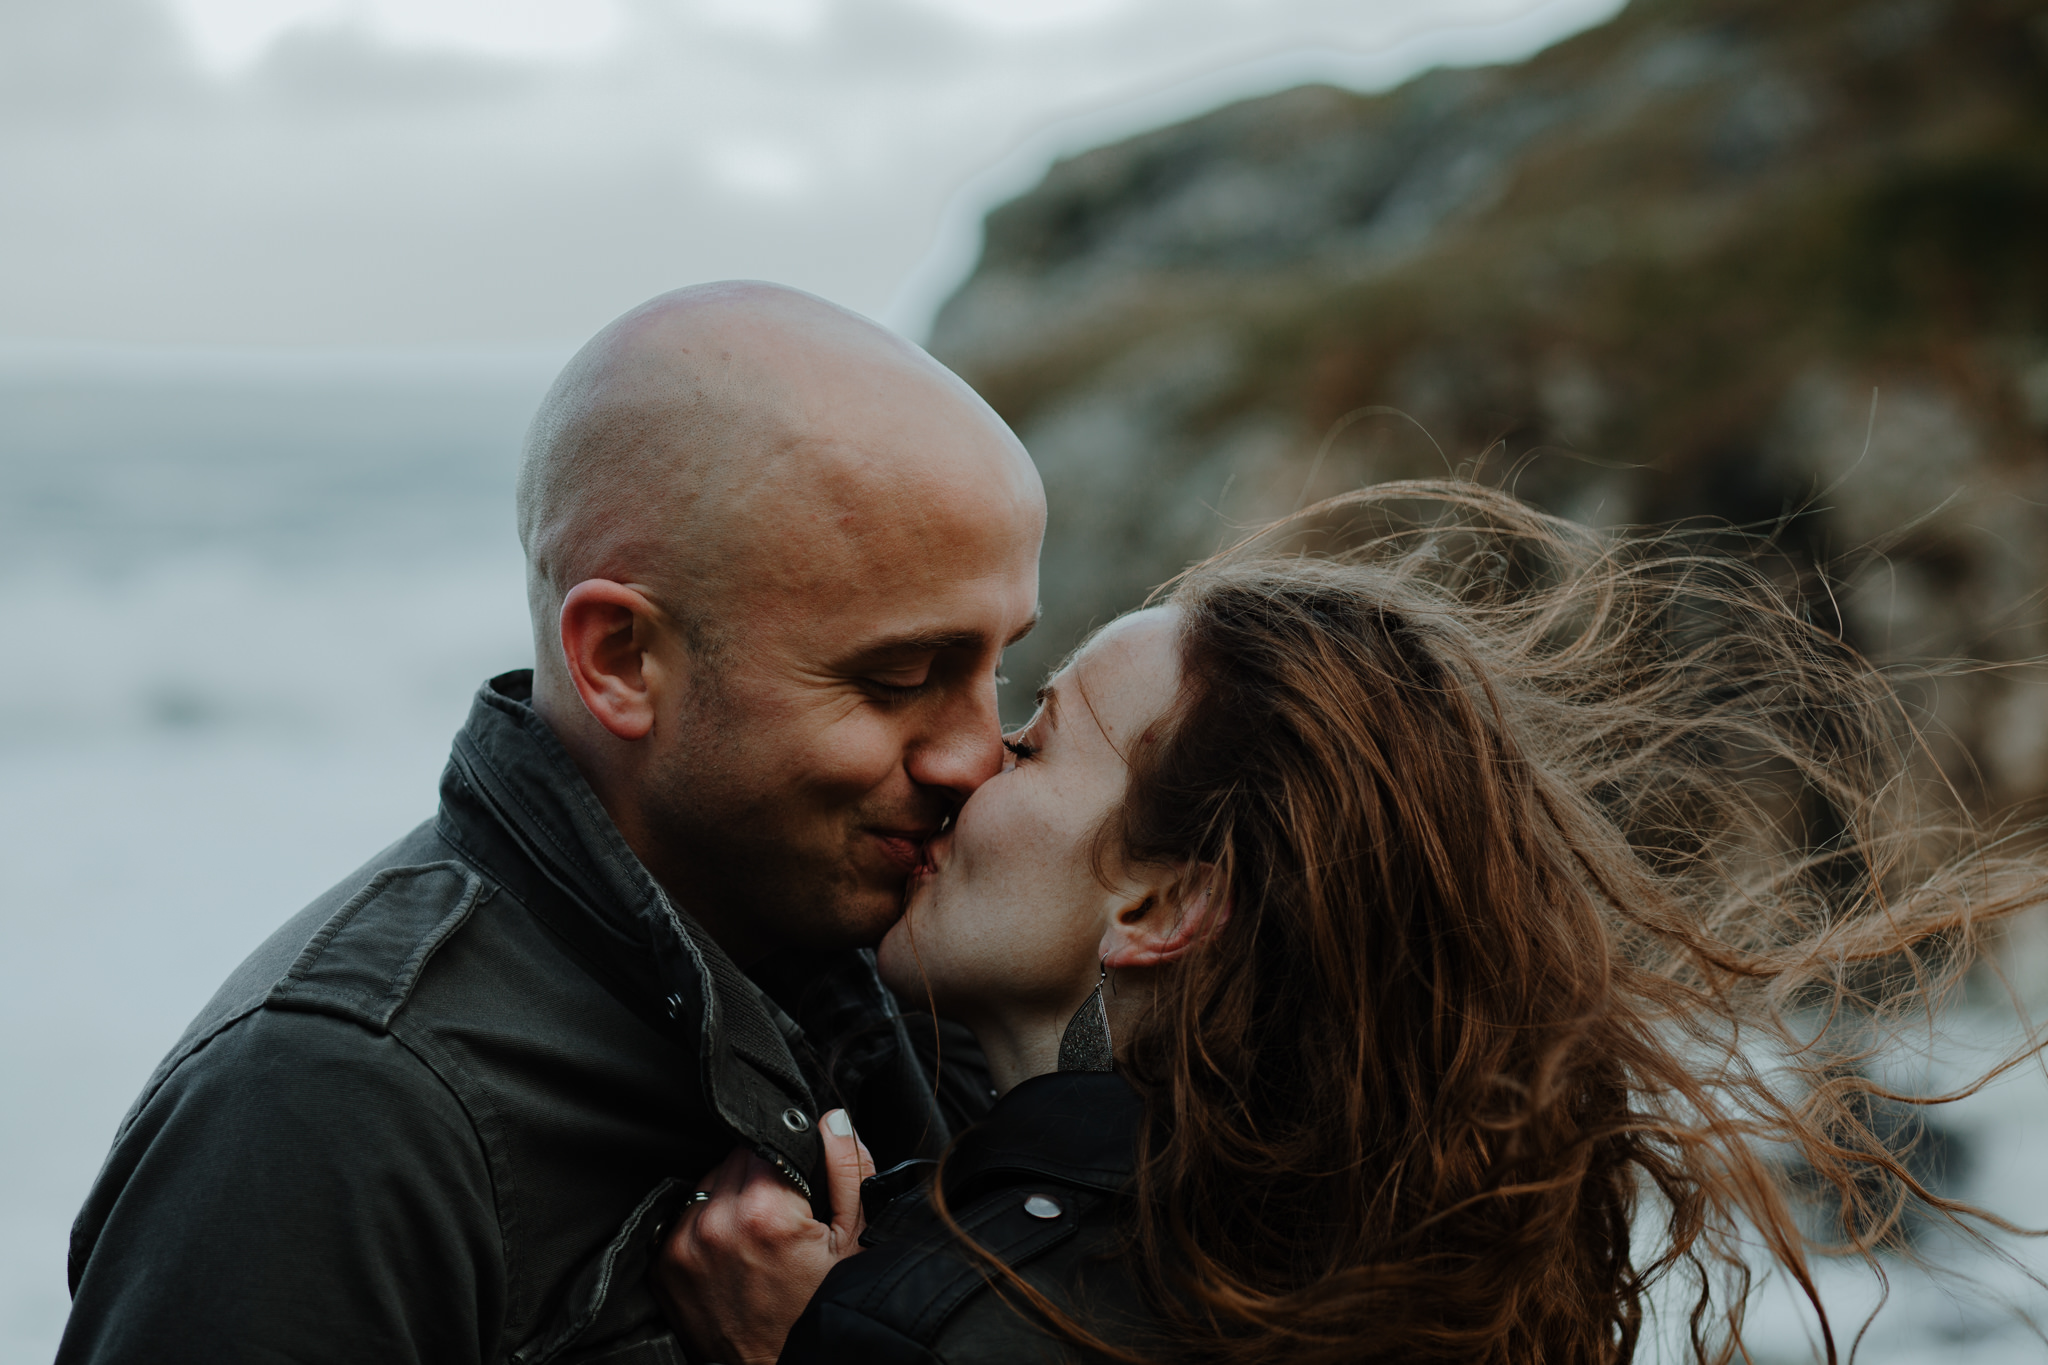 couple kissing wanderlust adventure travel kinbane castle